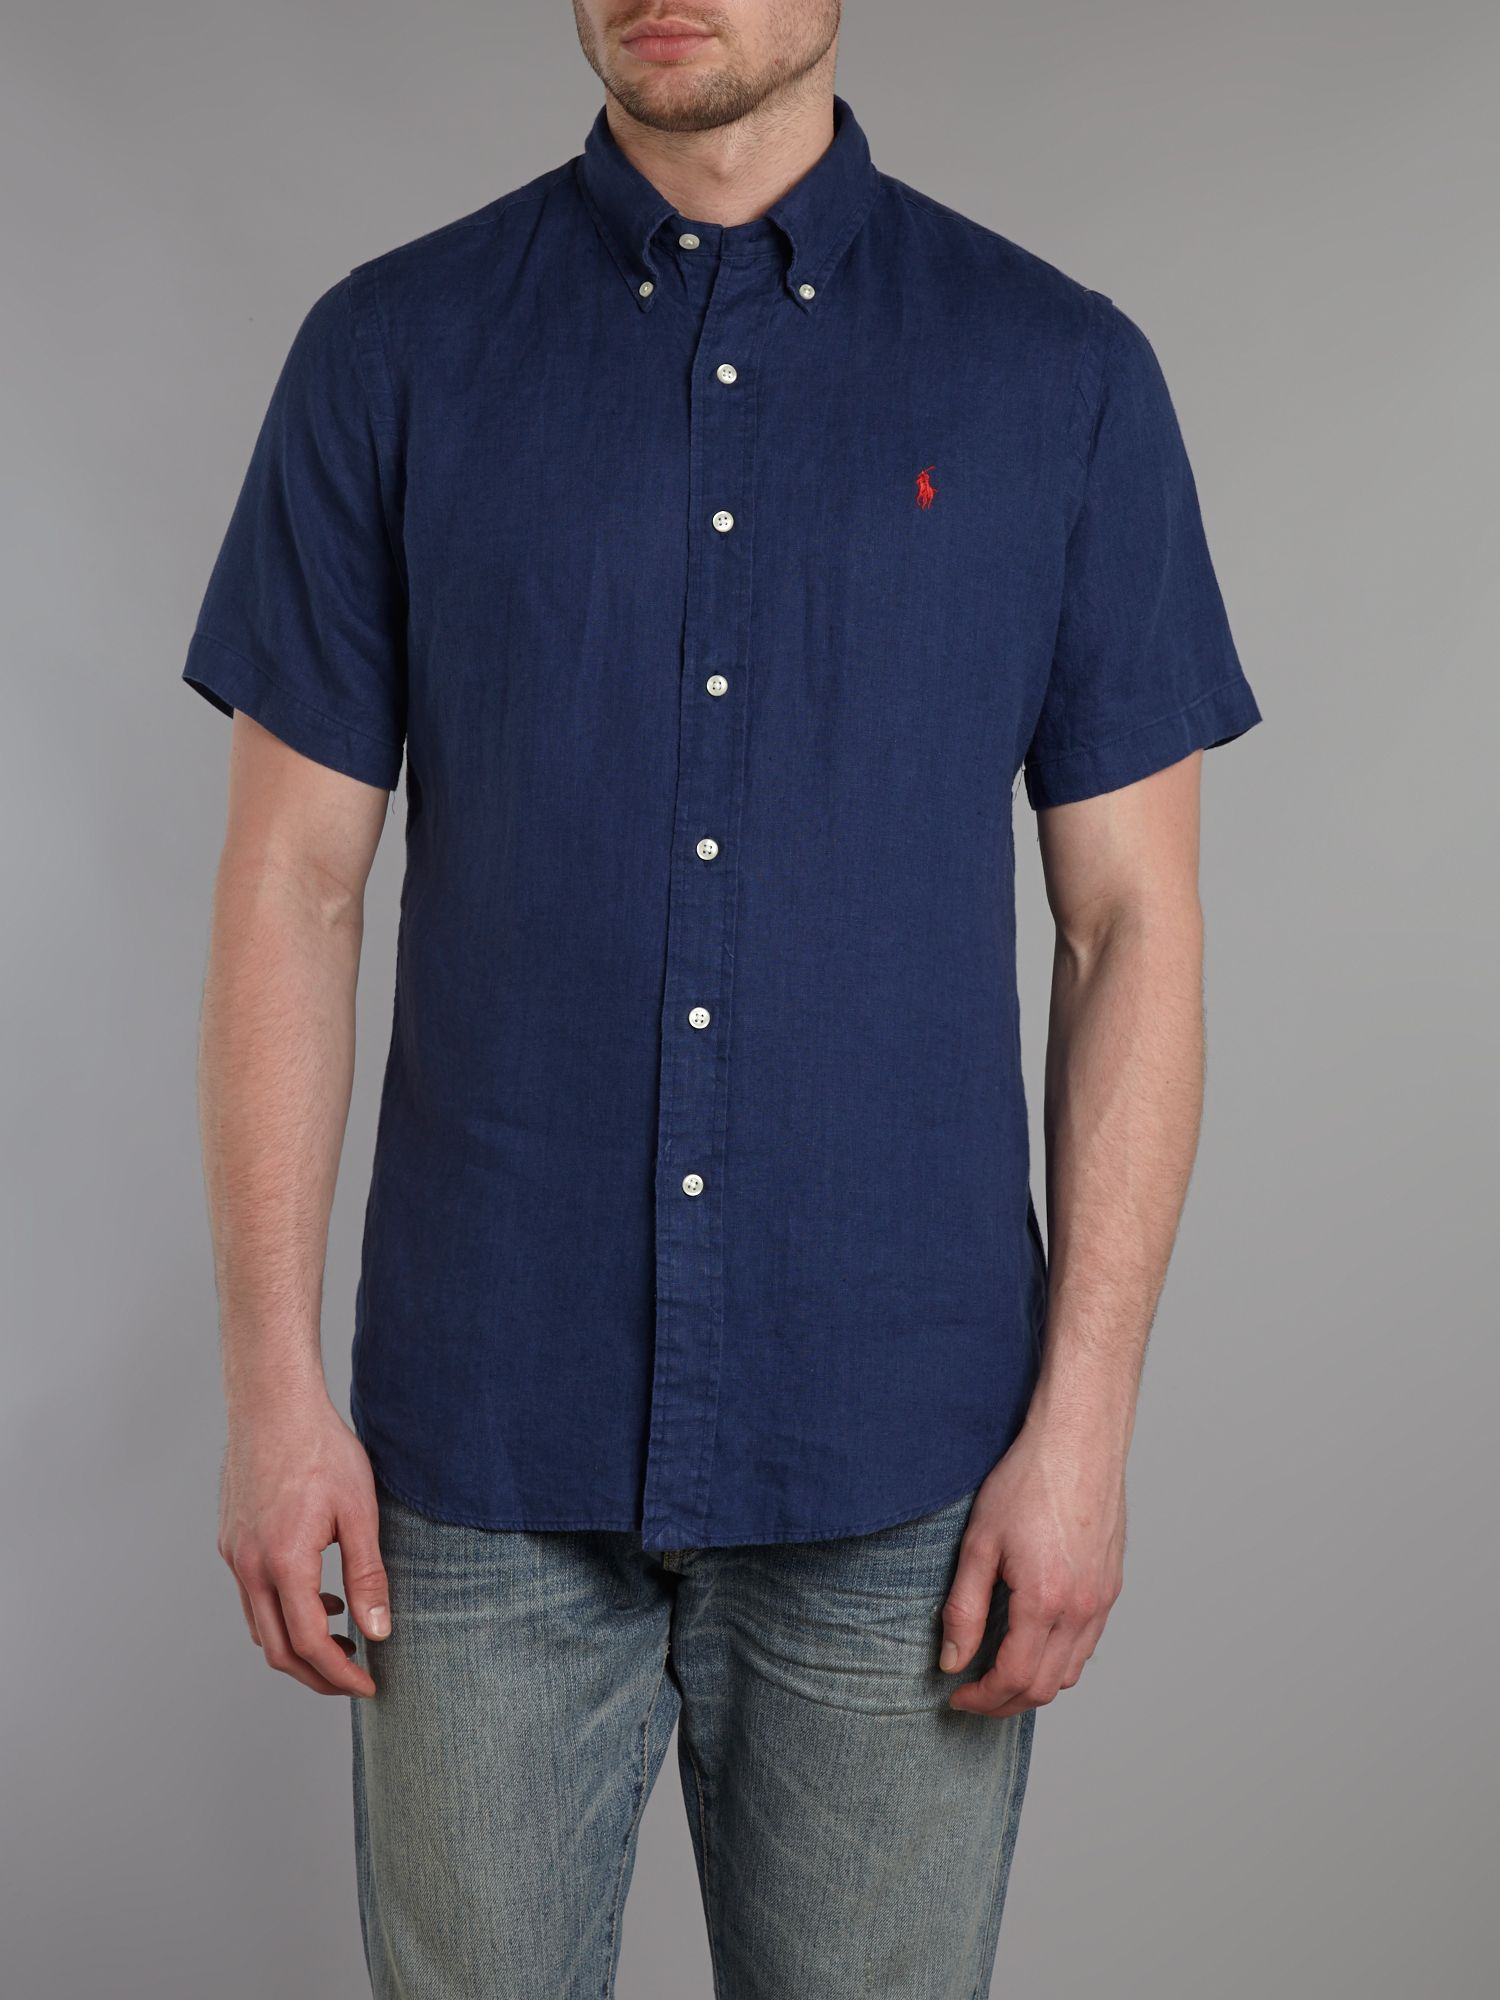 Short sleeved custom fit shirt